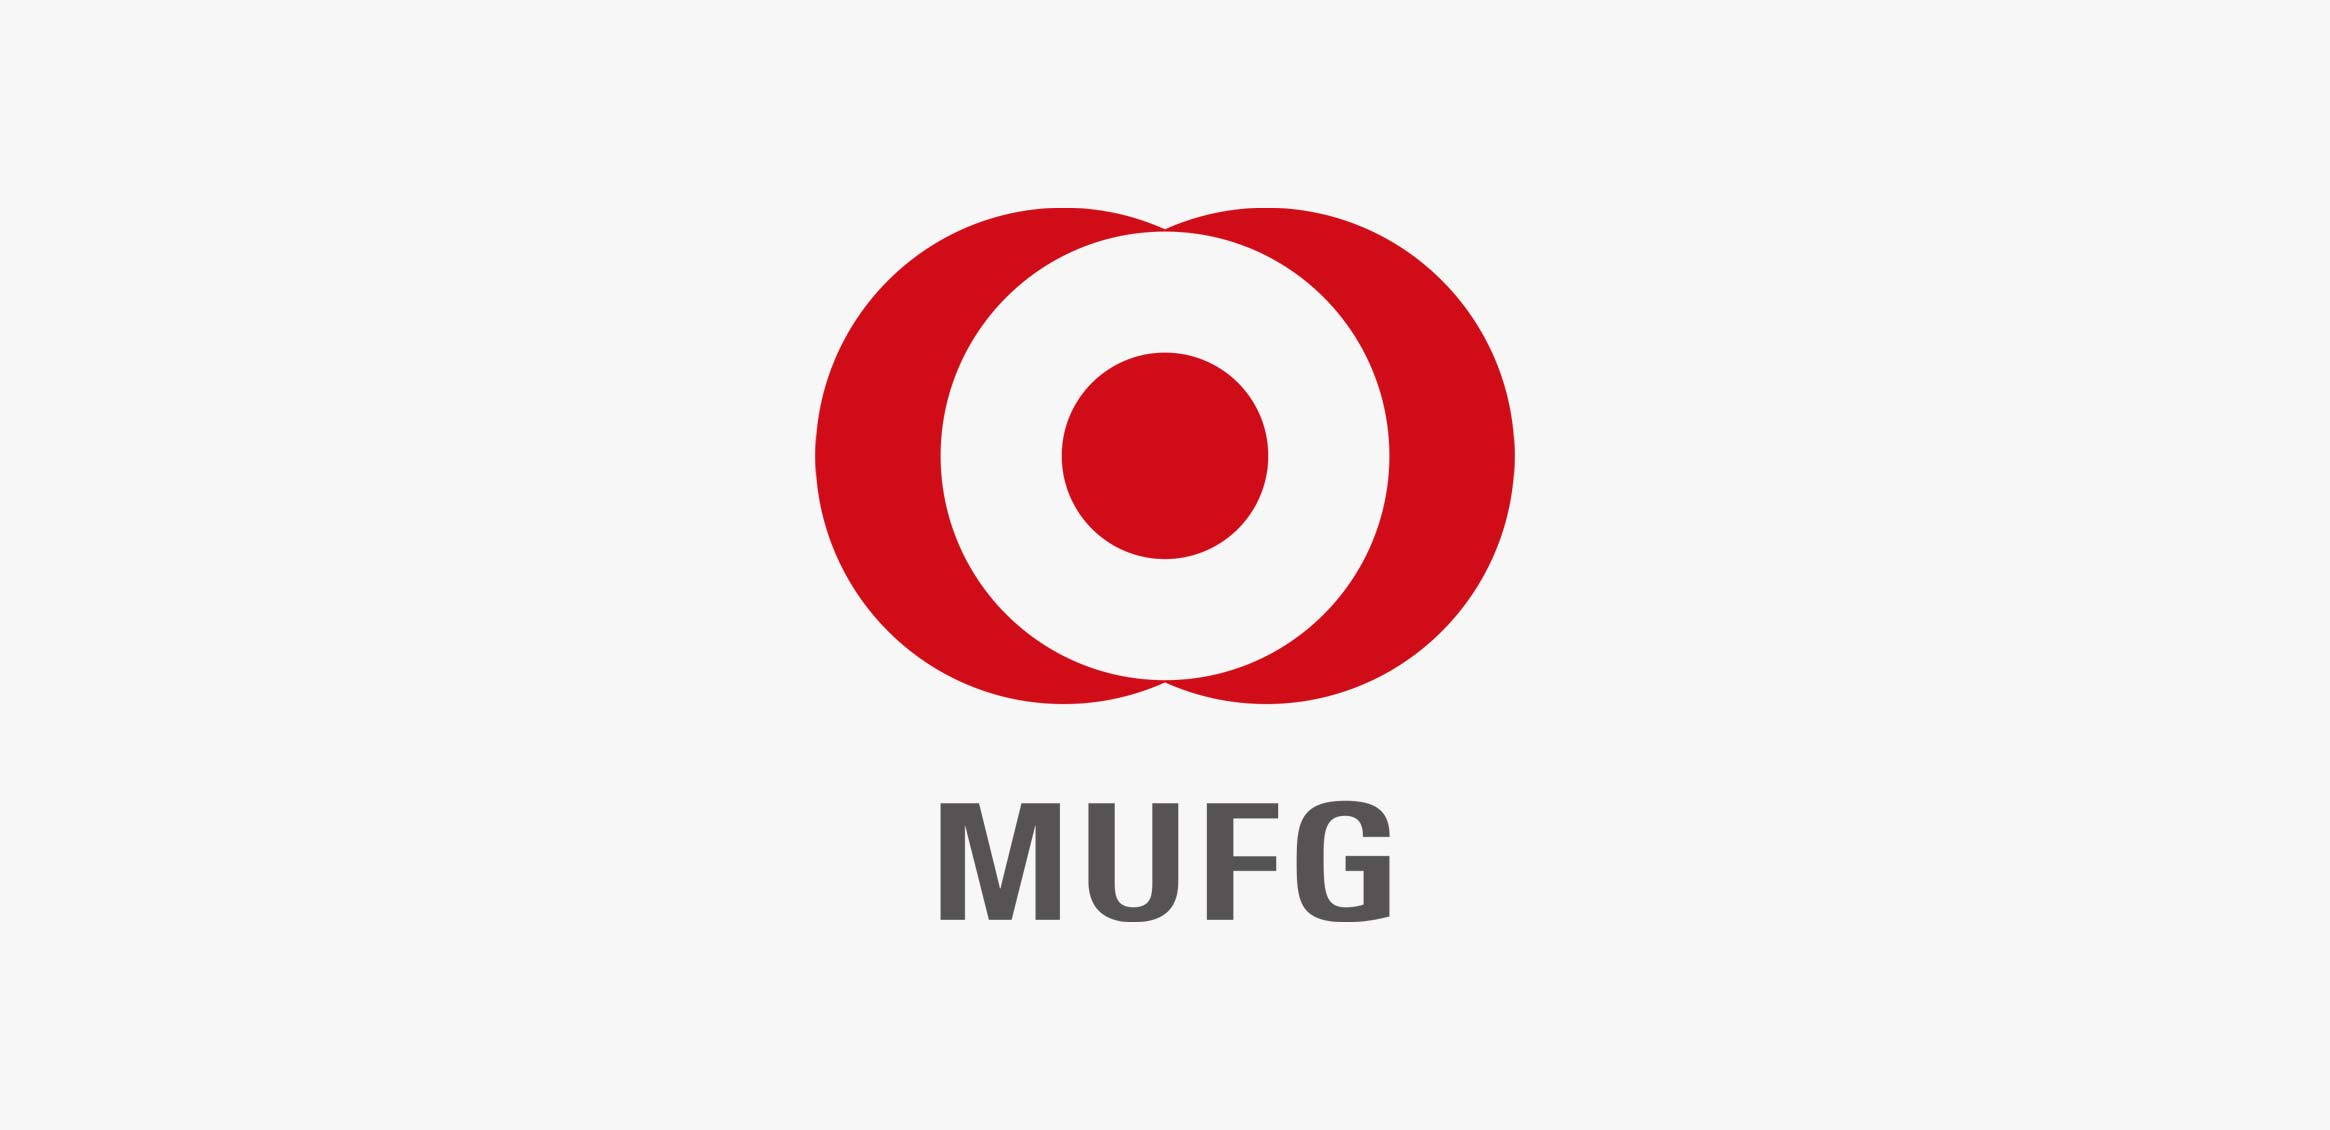 Mitsubishi UFJ Financial Group corporate image design0枚目